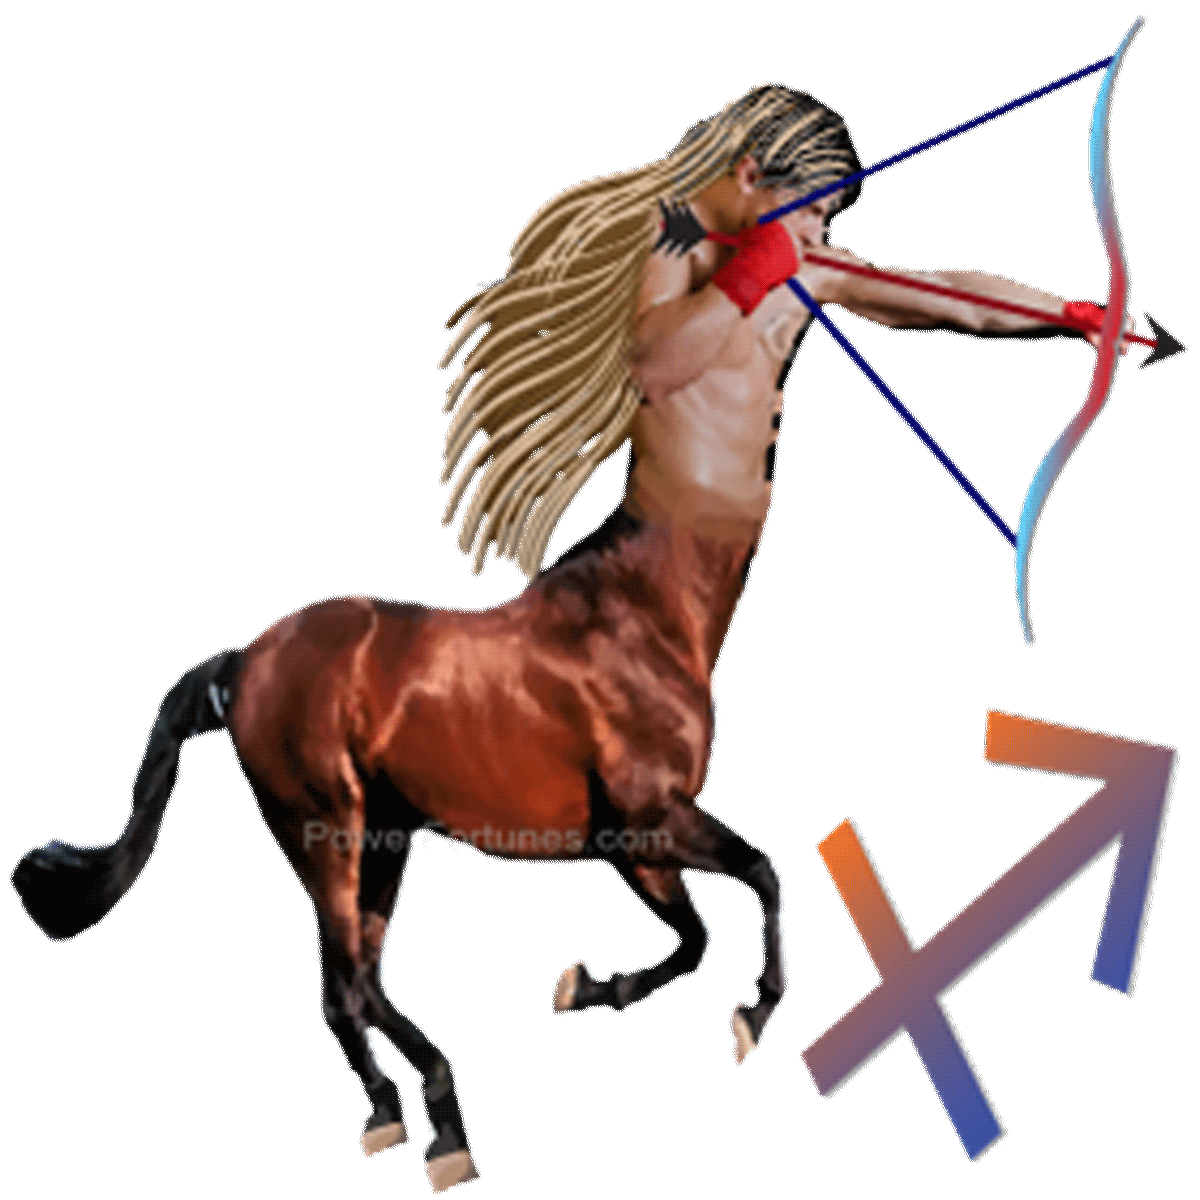 Monthly horoscopes for Sagittarius, from 1st March to 31st March